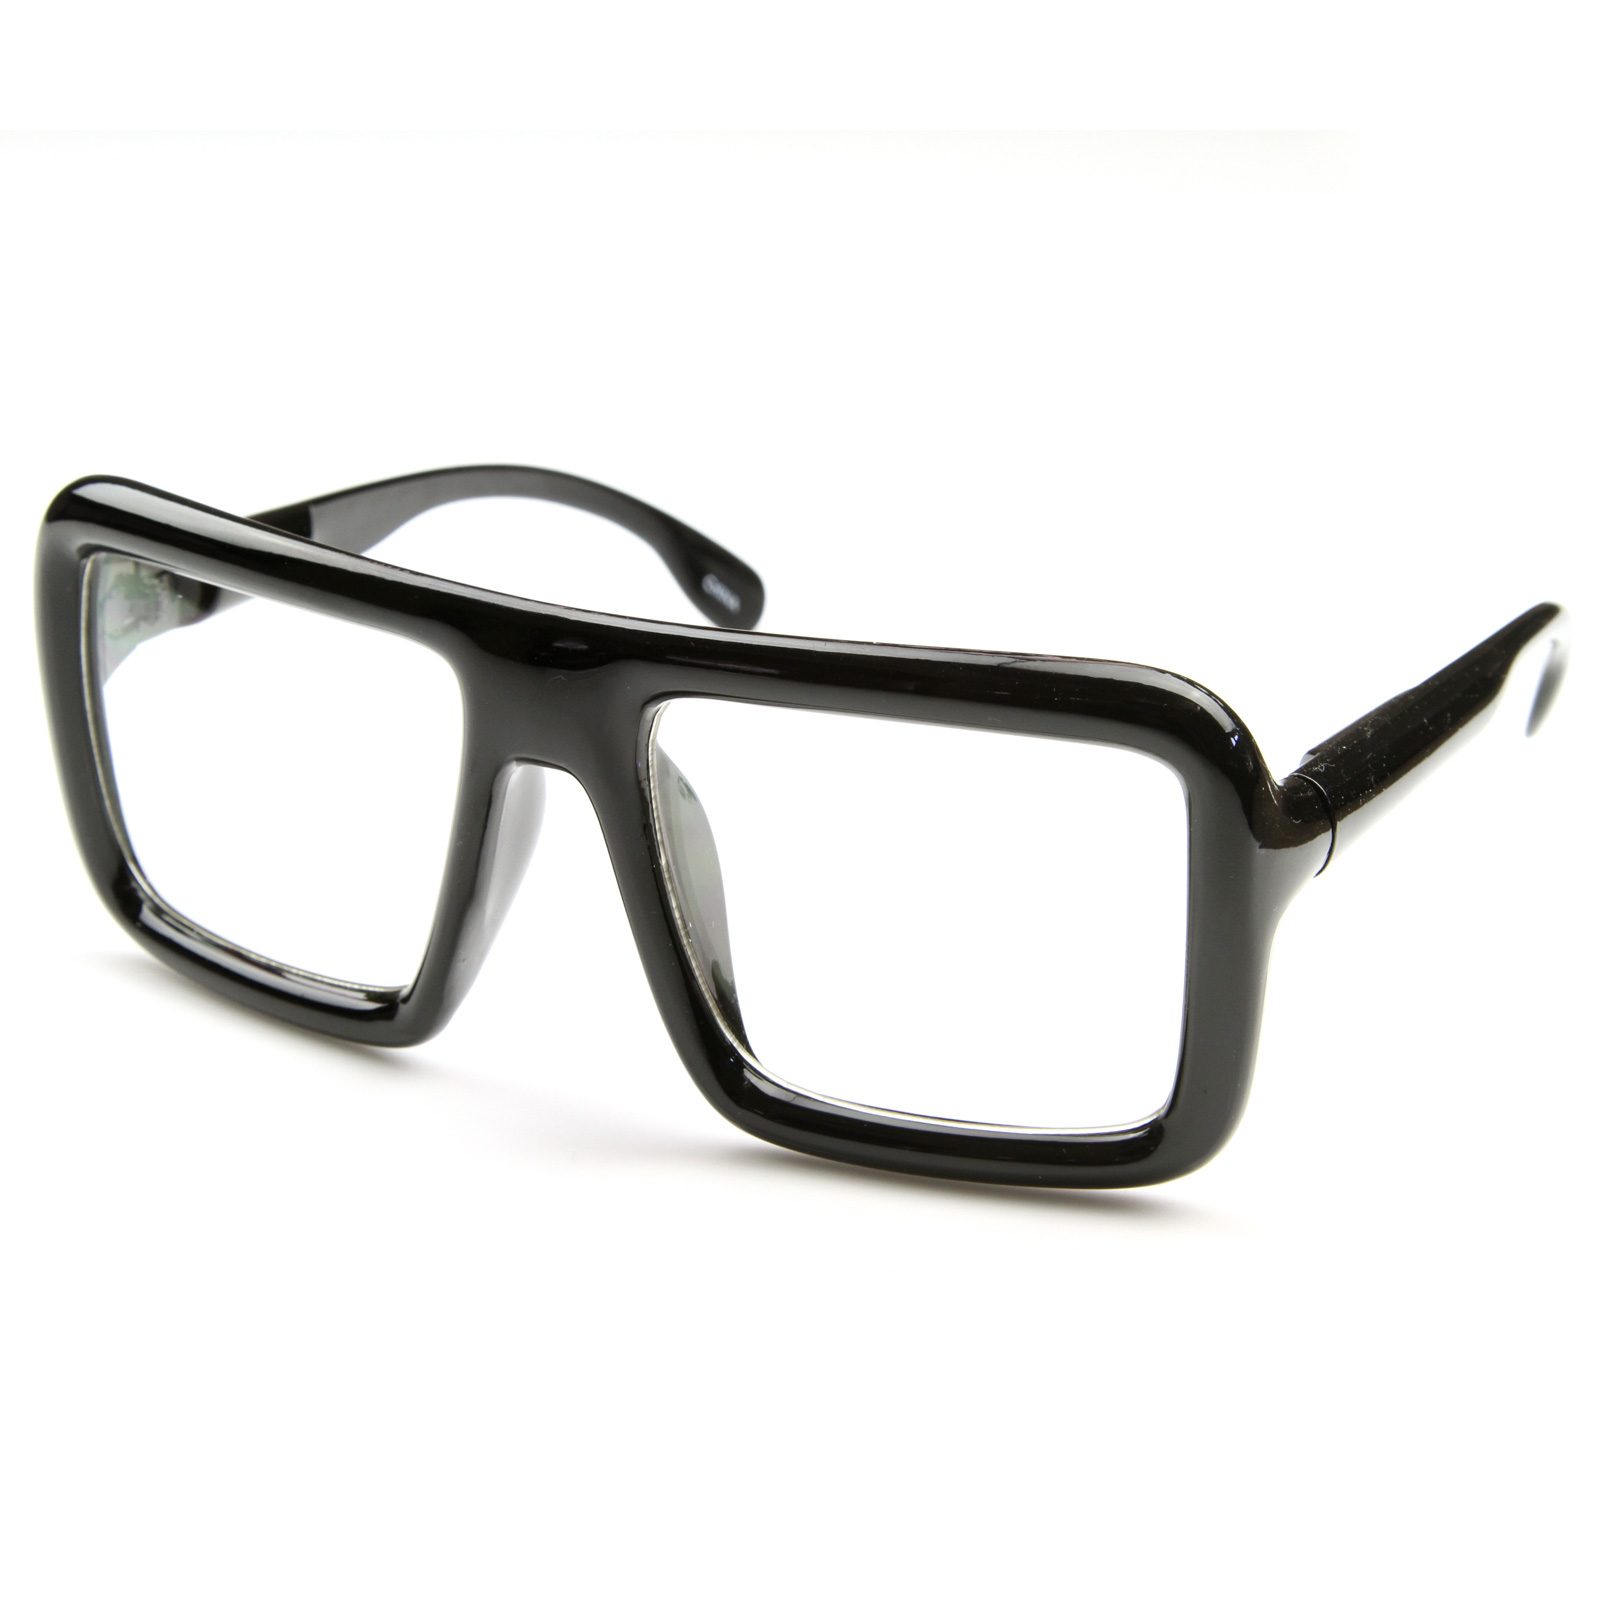 Black Frame Glasses Images : Cool Large Hipster Super Block Thick Square Frame Clear ...